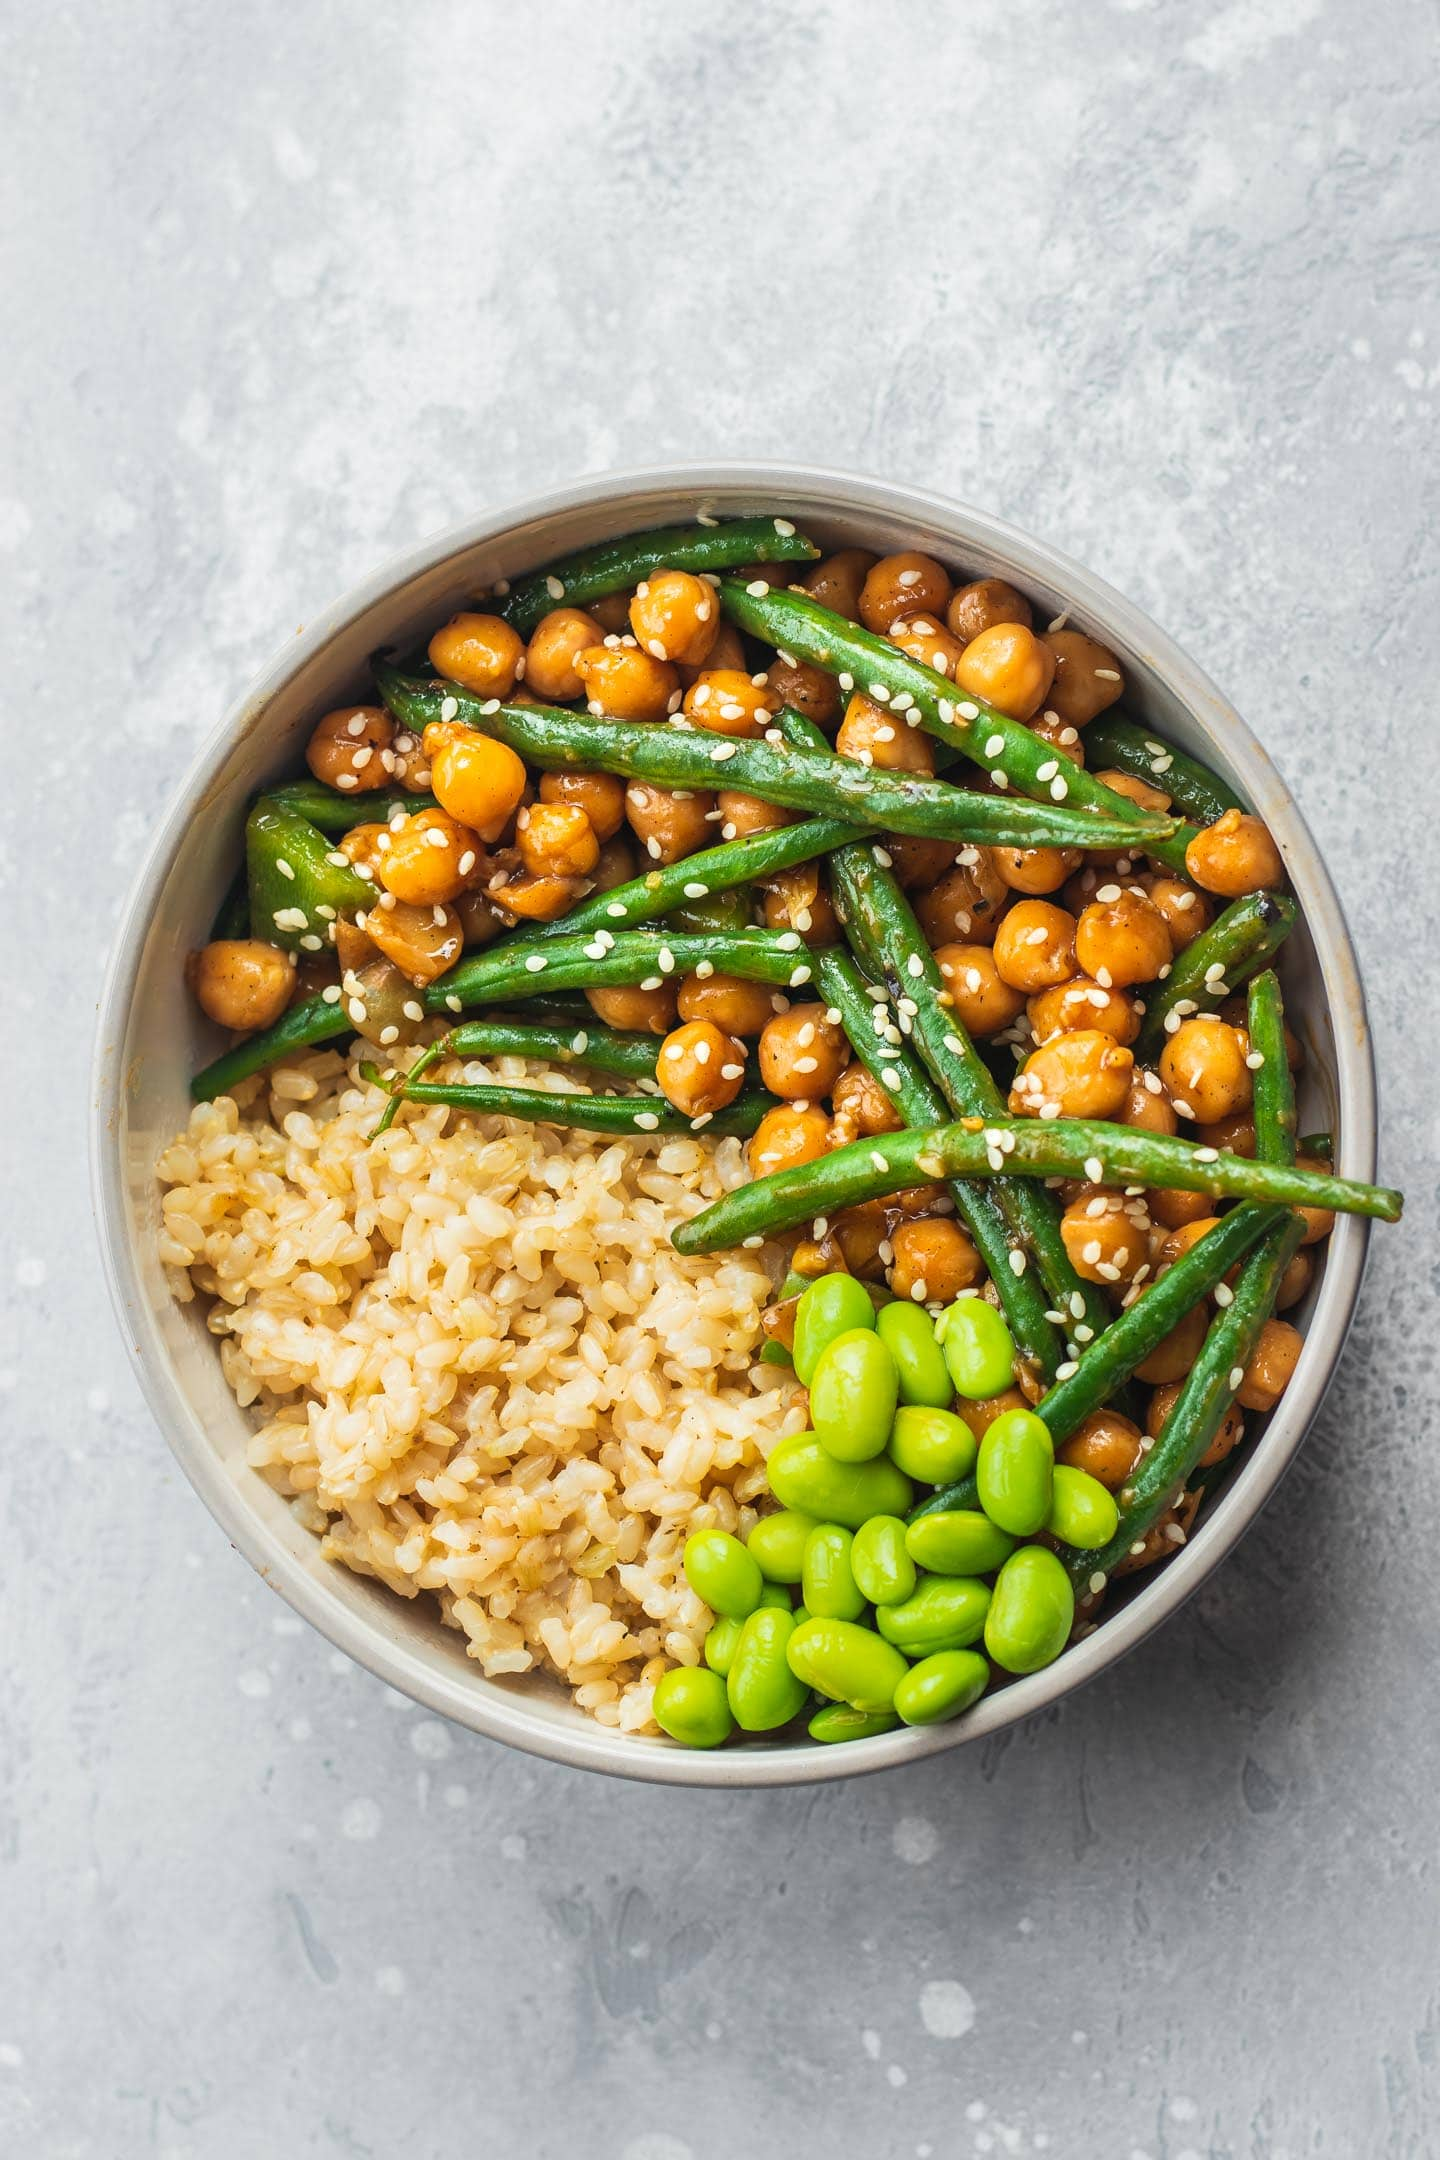 Vegan sweet and sour chickpeas and green beans